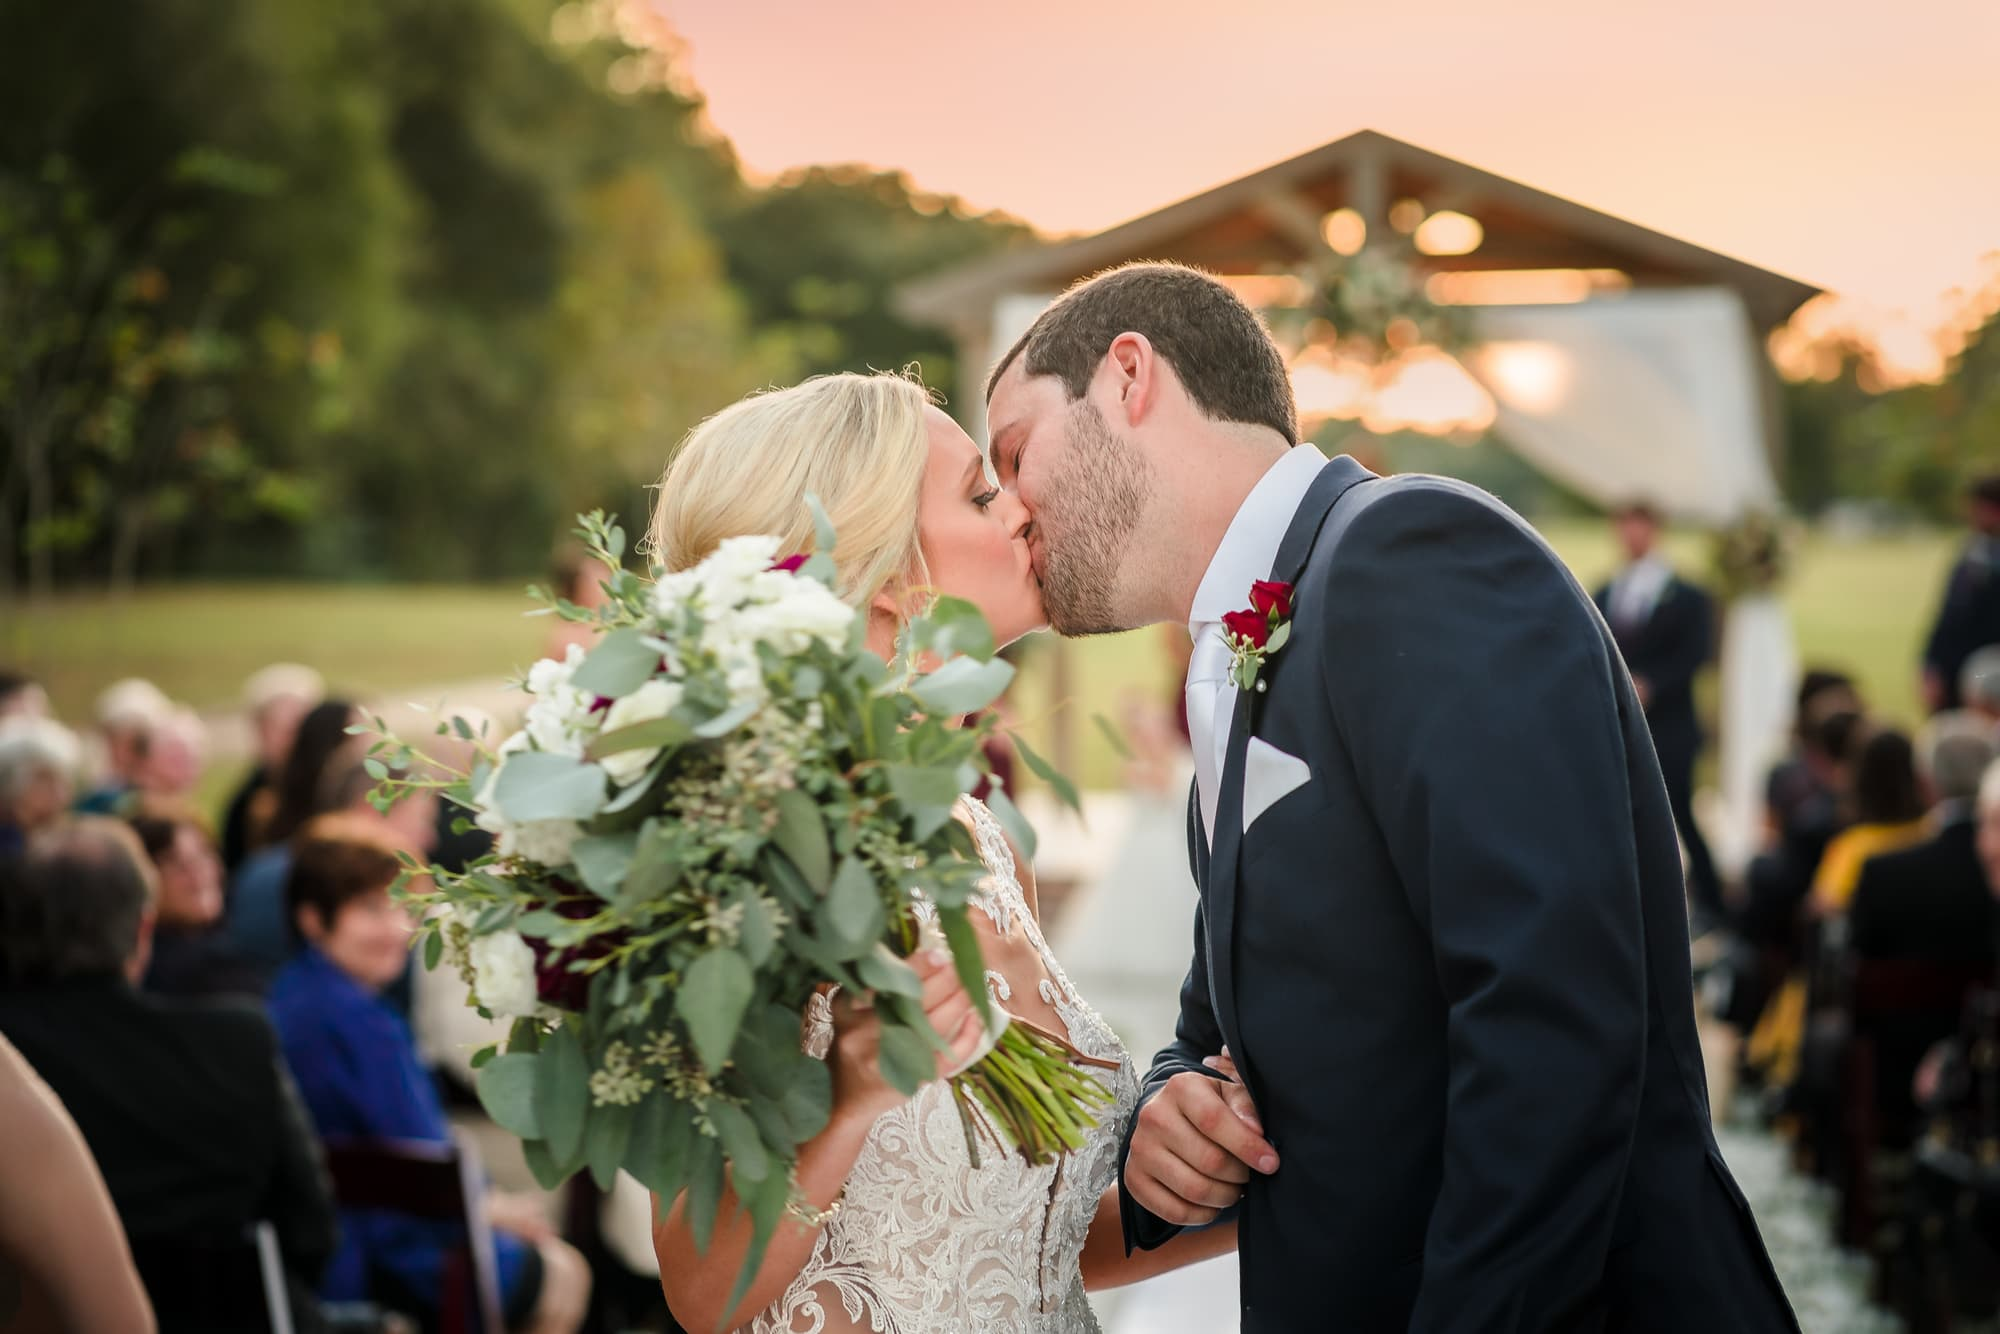 5 Essential Questions Brides Should Ask Their Wedding Photographer